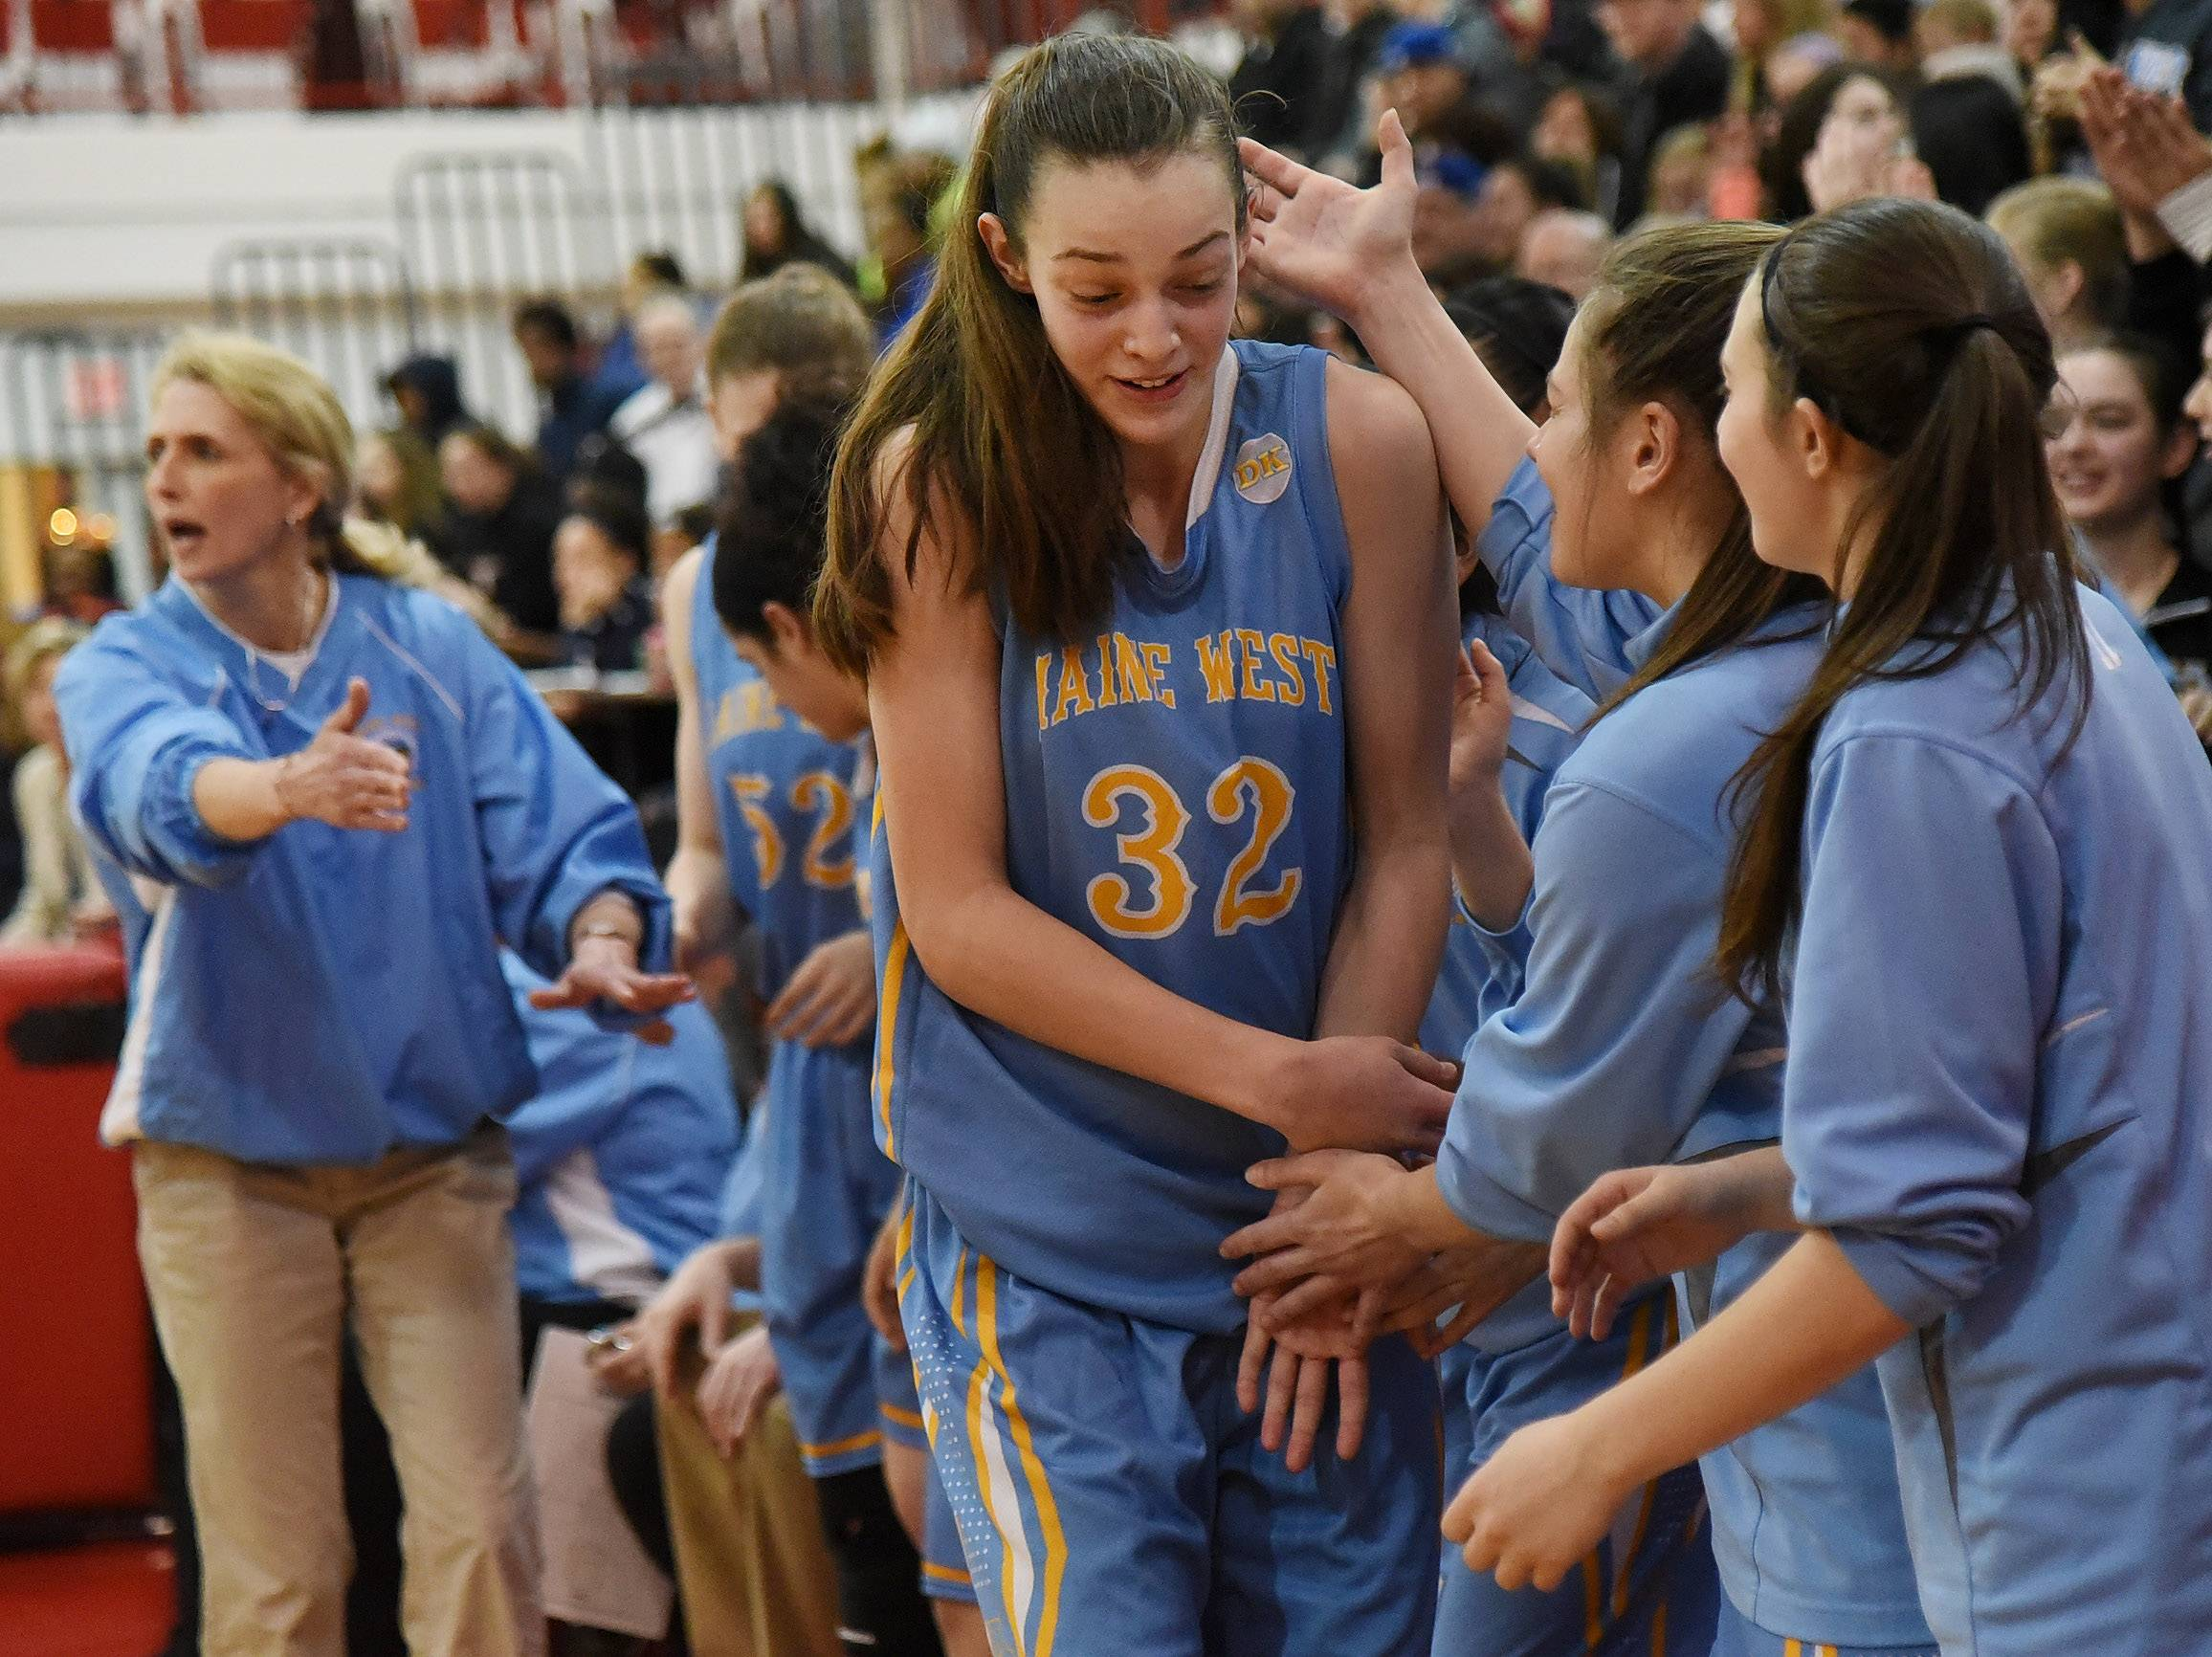 Maine West's Angela Dugalic is mobbed by her teammates after coming out of the game in the final minutes against Evanston in the Class 4A sectional final at Niles West on Thursday night.